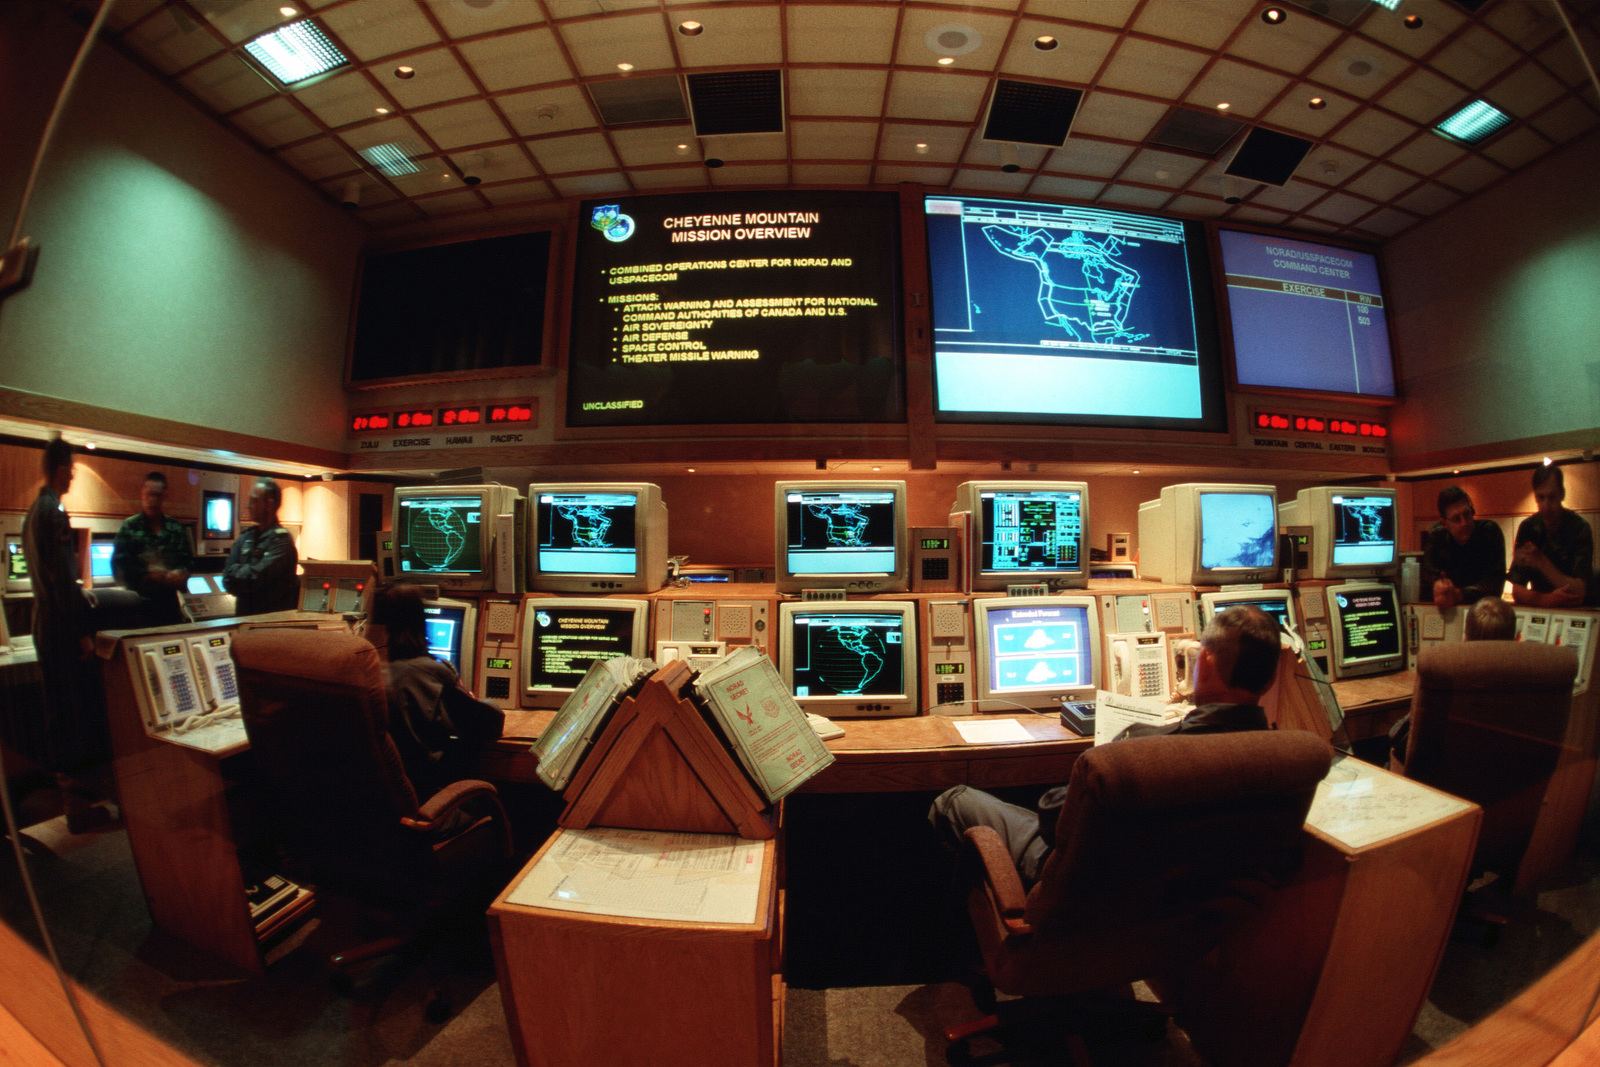 American and Canadian members, working in the North American Aerospace Defense Command's (NORAD) center inside of Cheyenne Mountain, Colorado, keep an eye on the sky looking for threats aimed at our continent. This image was used in the January 1996 issue of AIRMAN Magazine